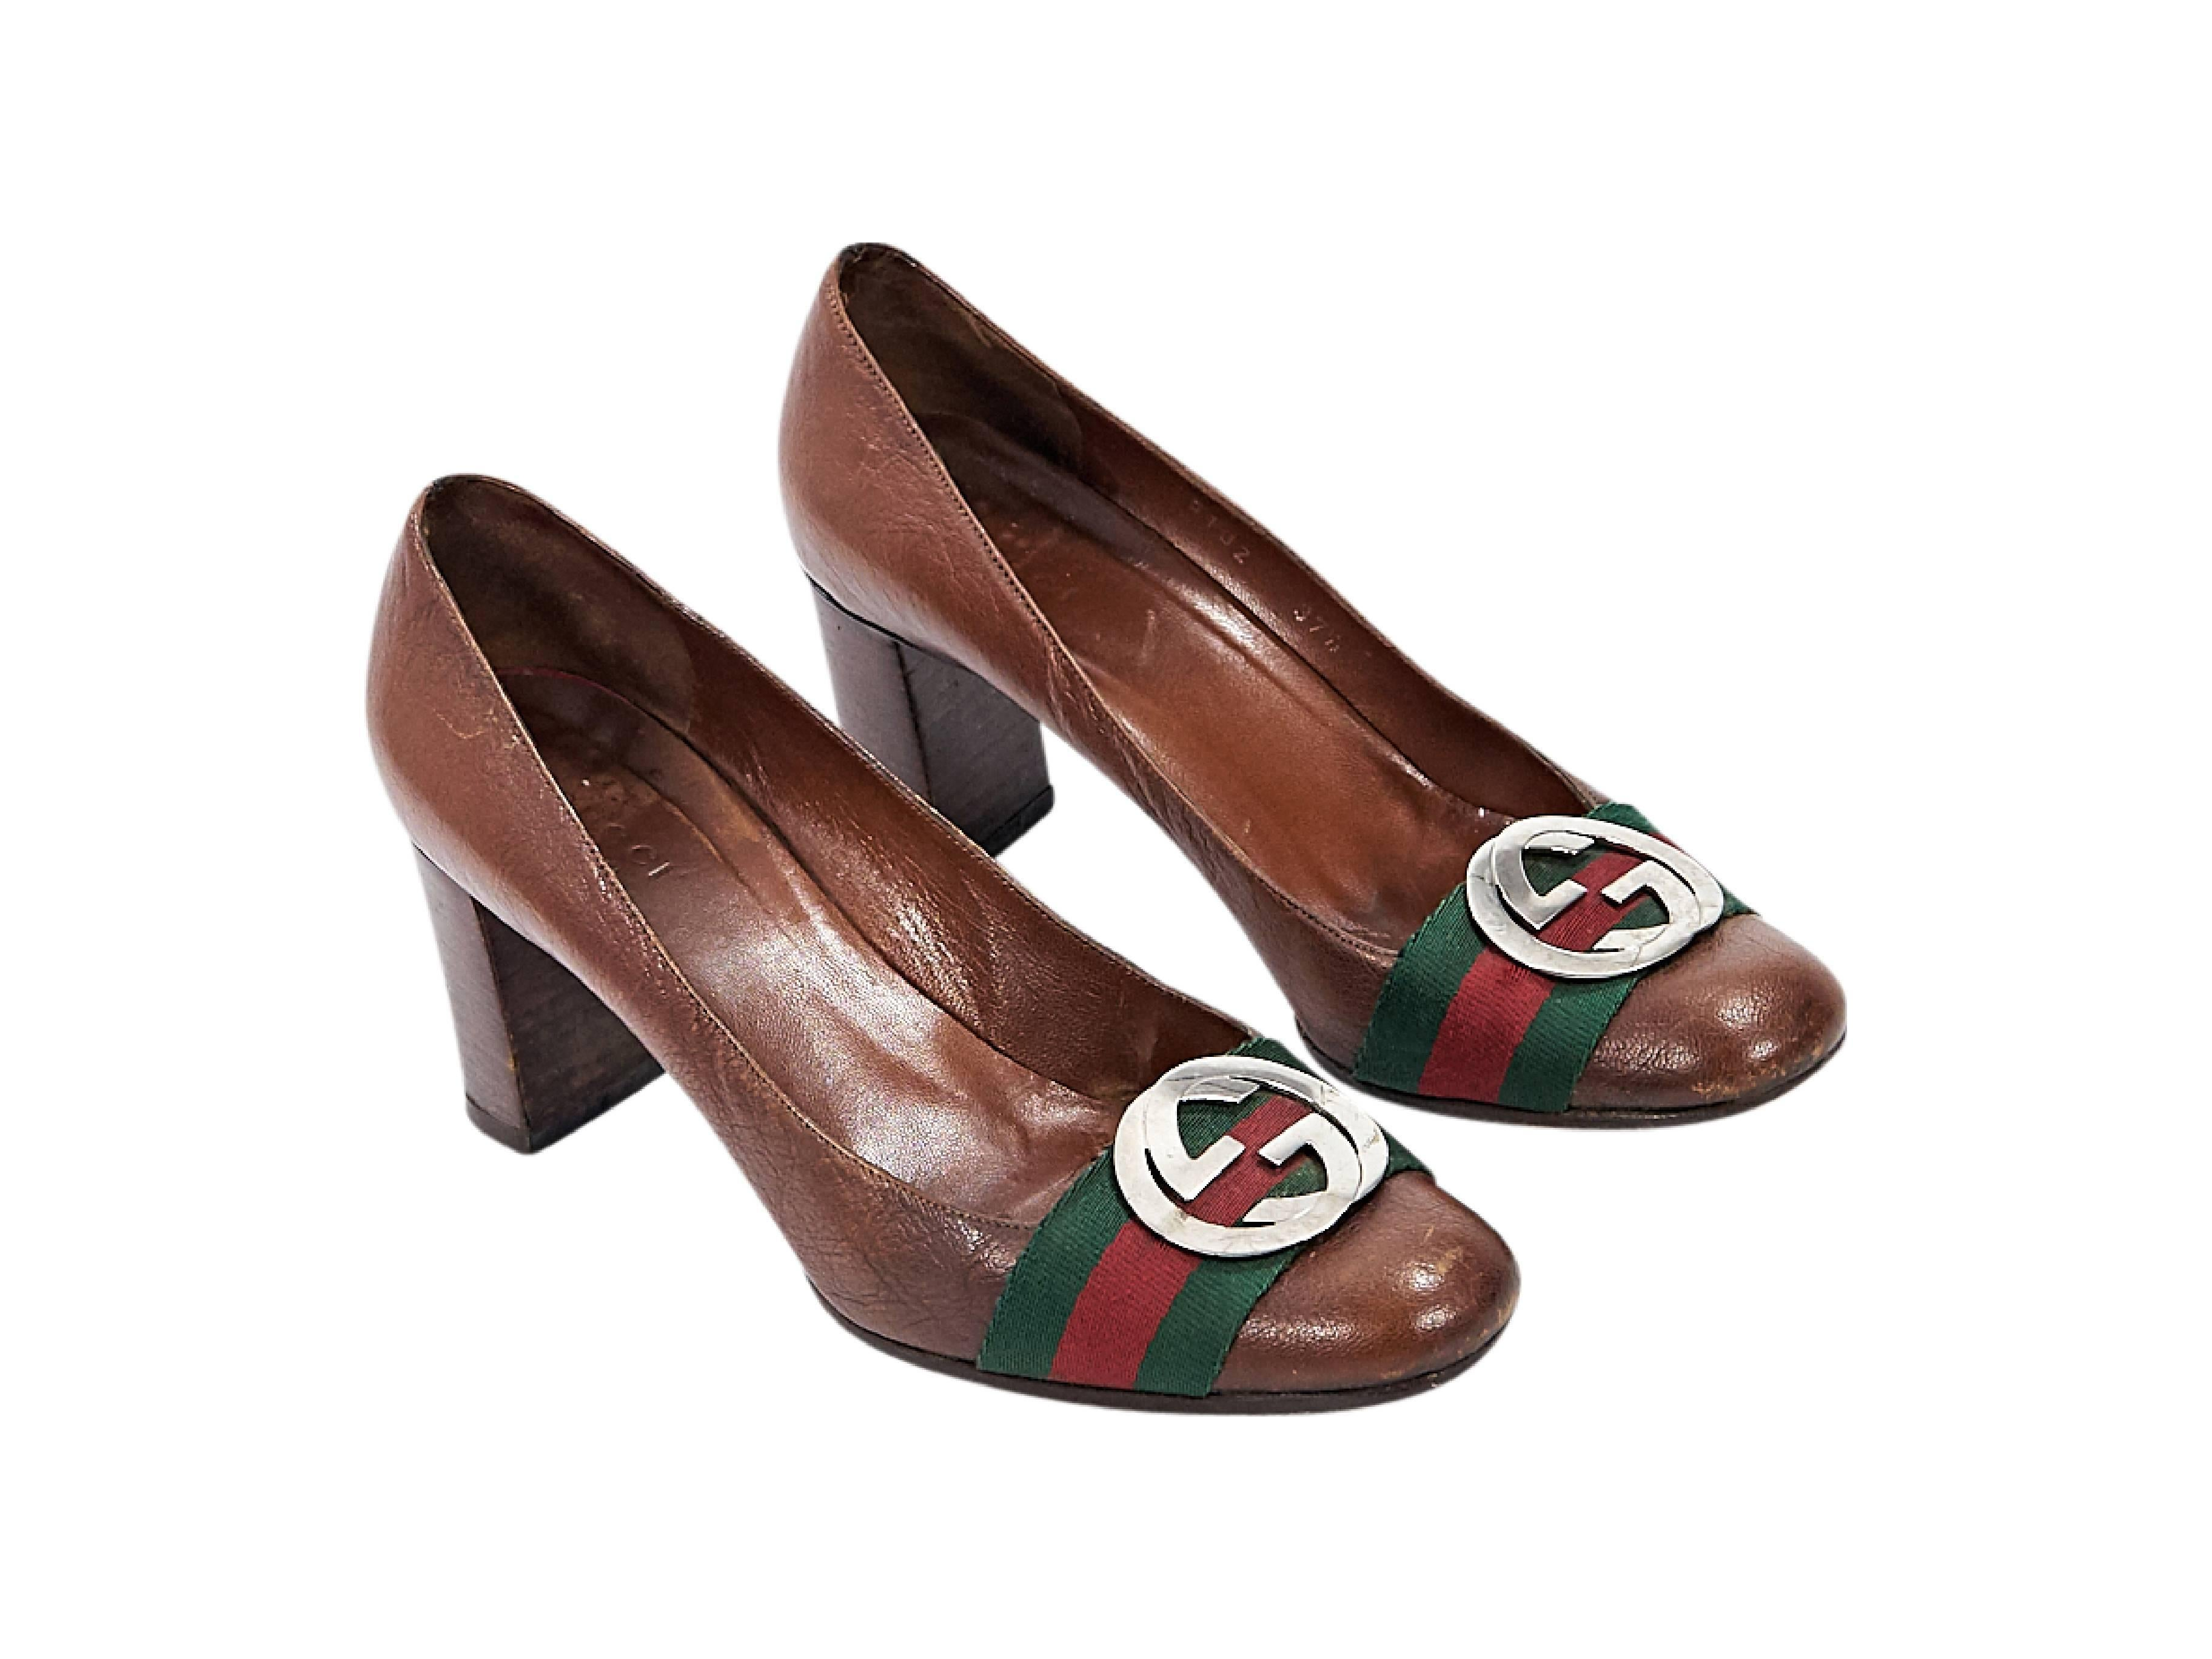 b9c409213 Comfortable Brown Vintage Gucci Leather Pumps For Sale At 1stdibs ...